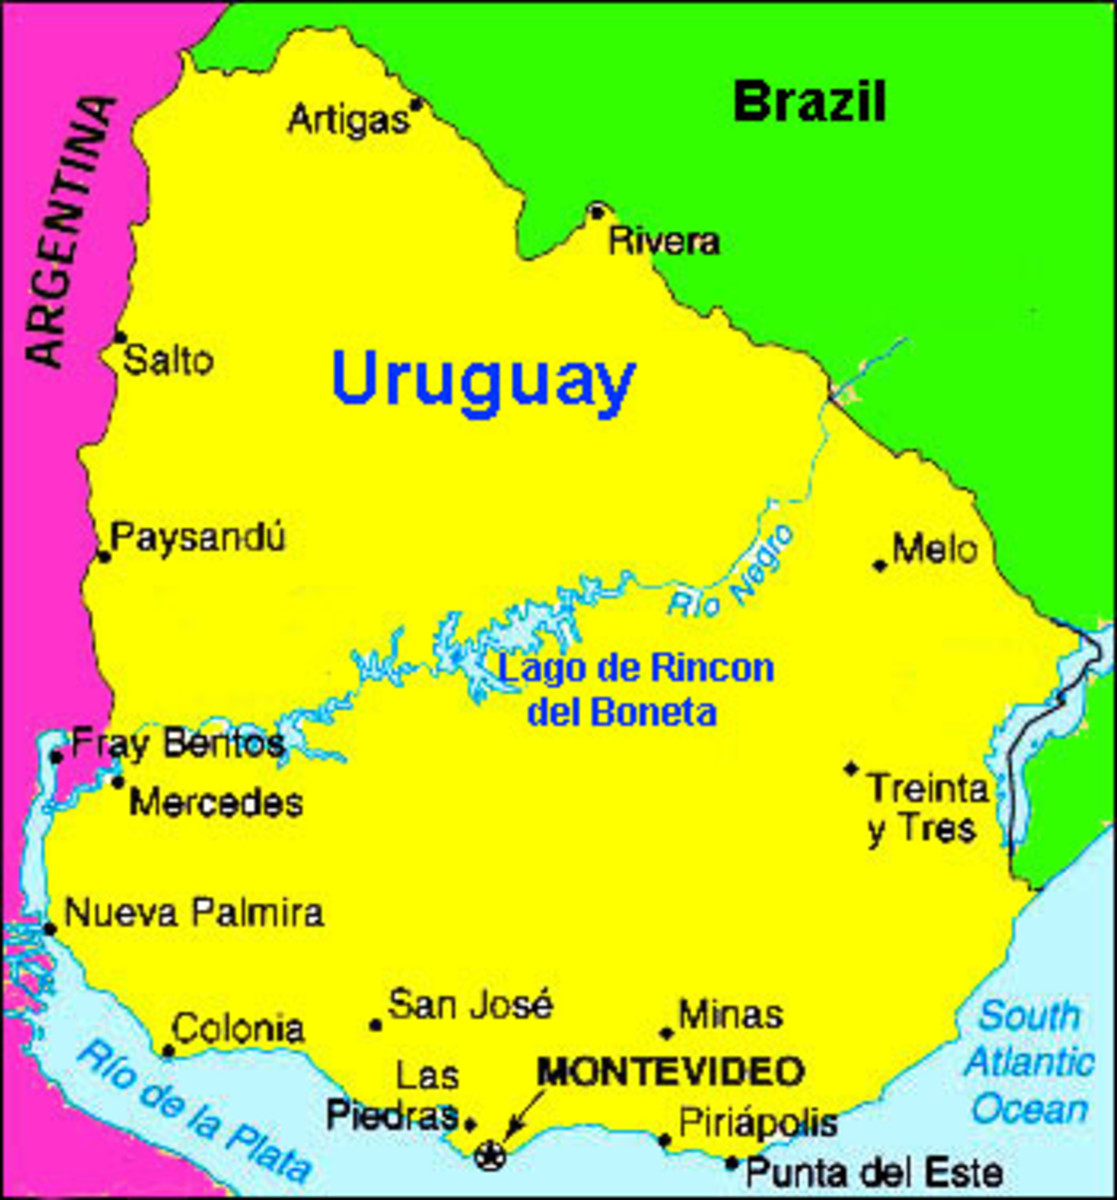 20-fun-and-interesting-facts-on-uruguay